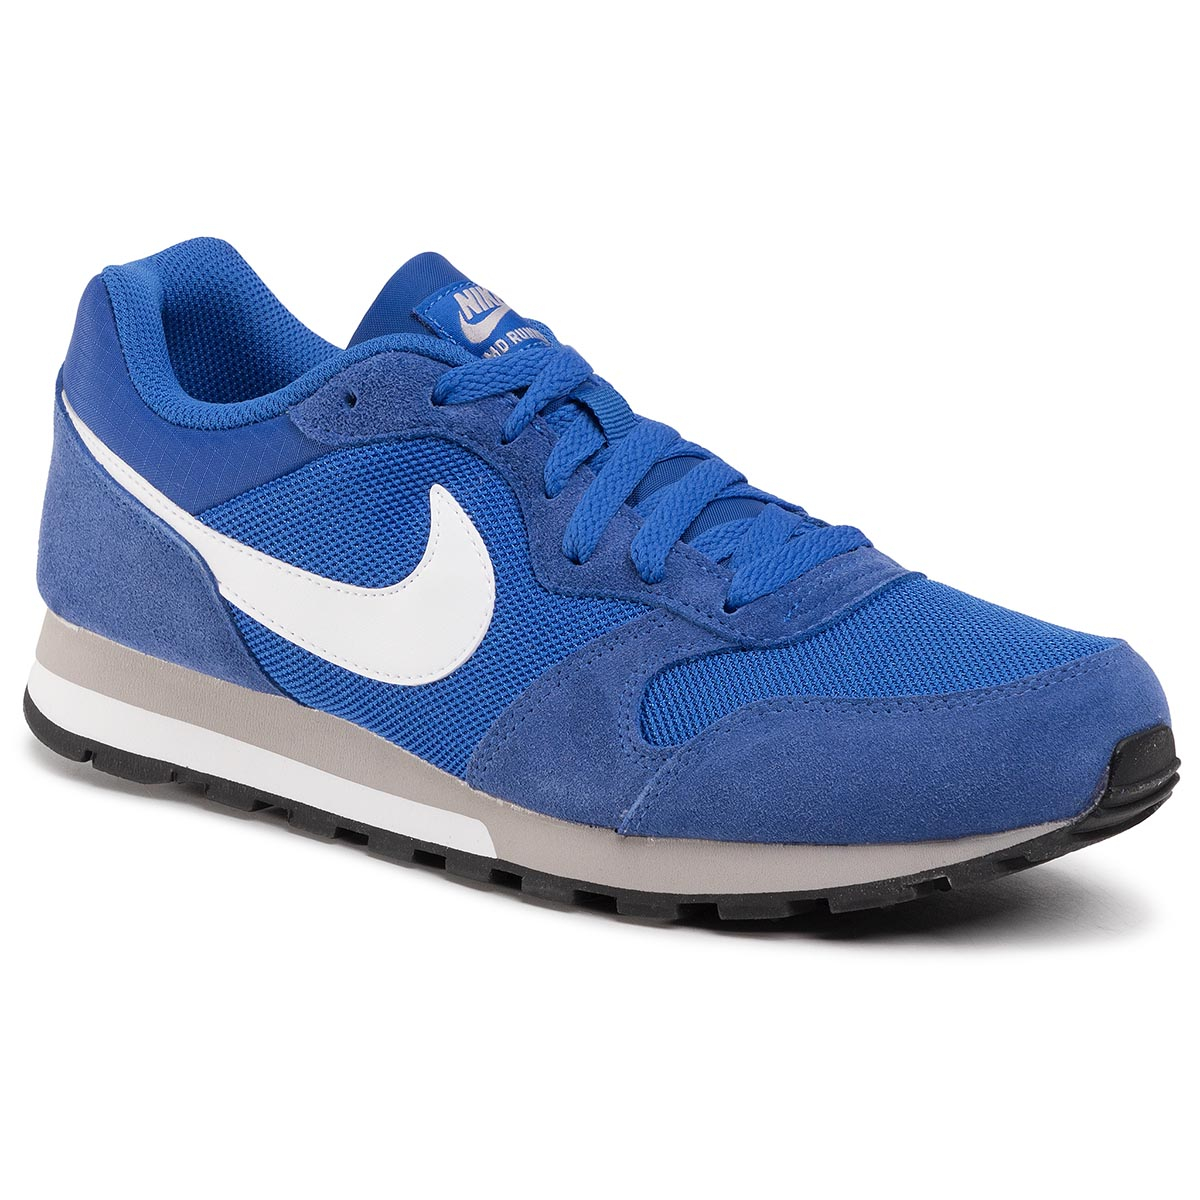 Topánky NIKE - Md Runner 749794 411 Game Royal/White/Wlf Gry/White